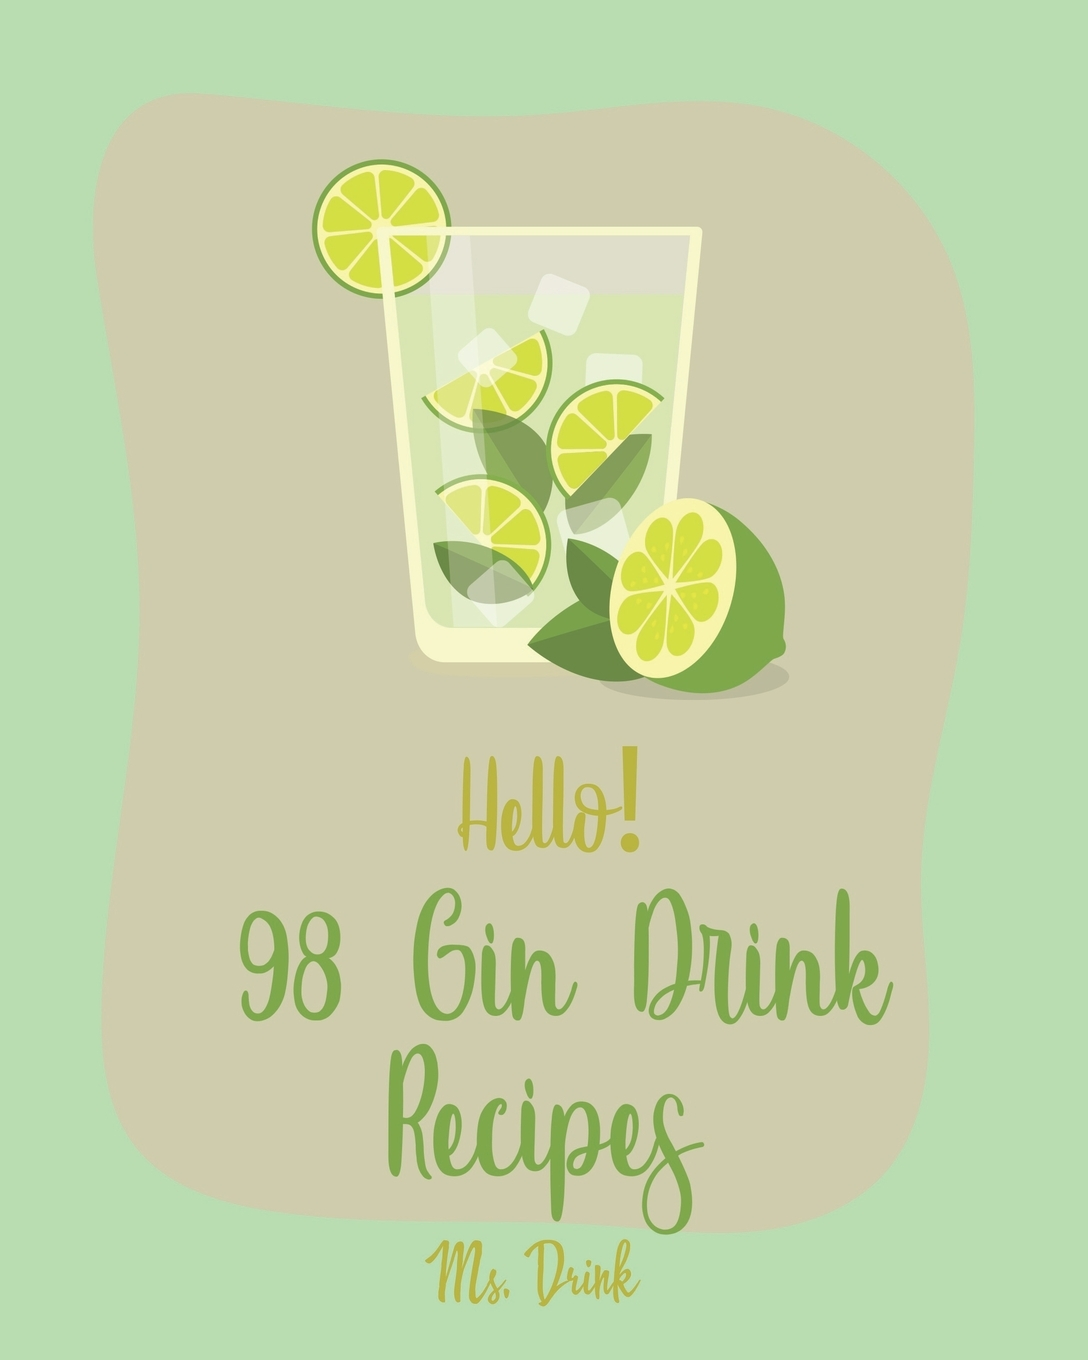 Gin Drink Recipes Hello 98 Gin Drink Recipes Best Gin Drink Cookbook Ever For Beginners Sangria Recipe Martini Recipe Vodka Cocktail Recipes Tequila Cocktail Recipe Book Summer Cocktails Cookbook Book 1 Paperback